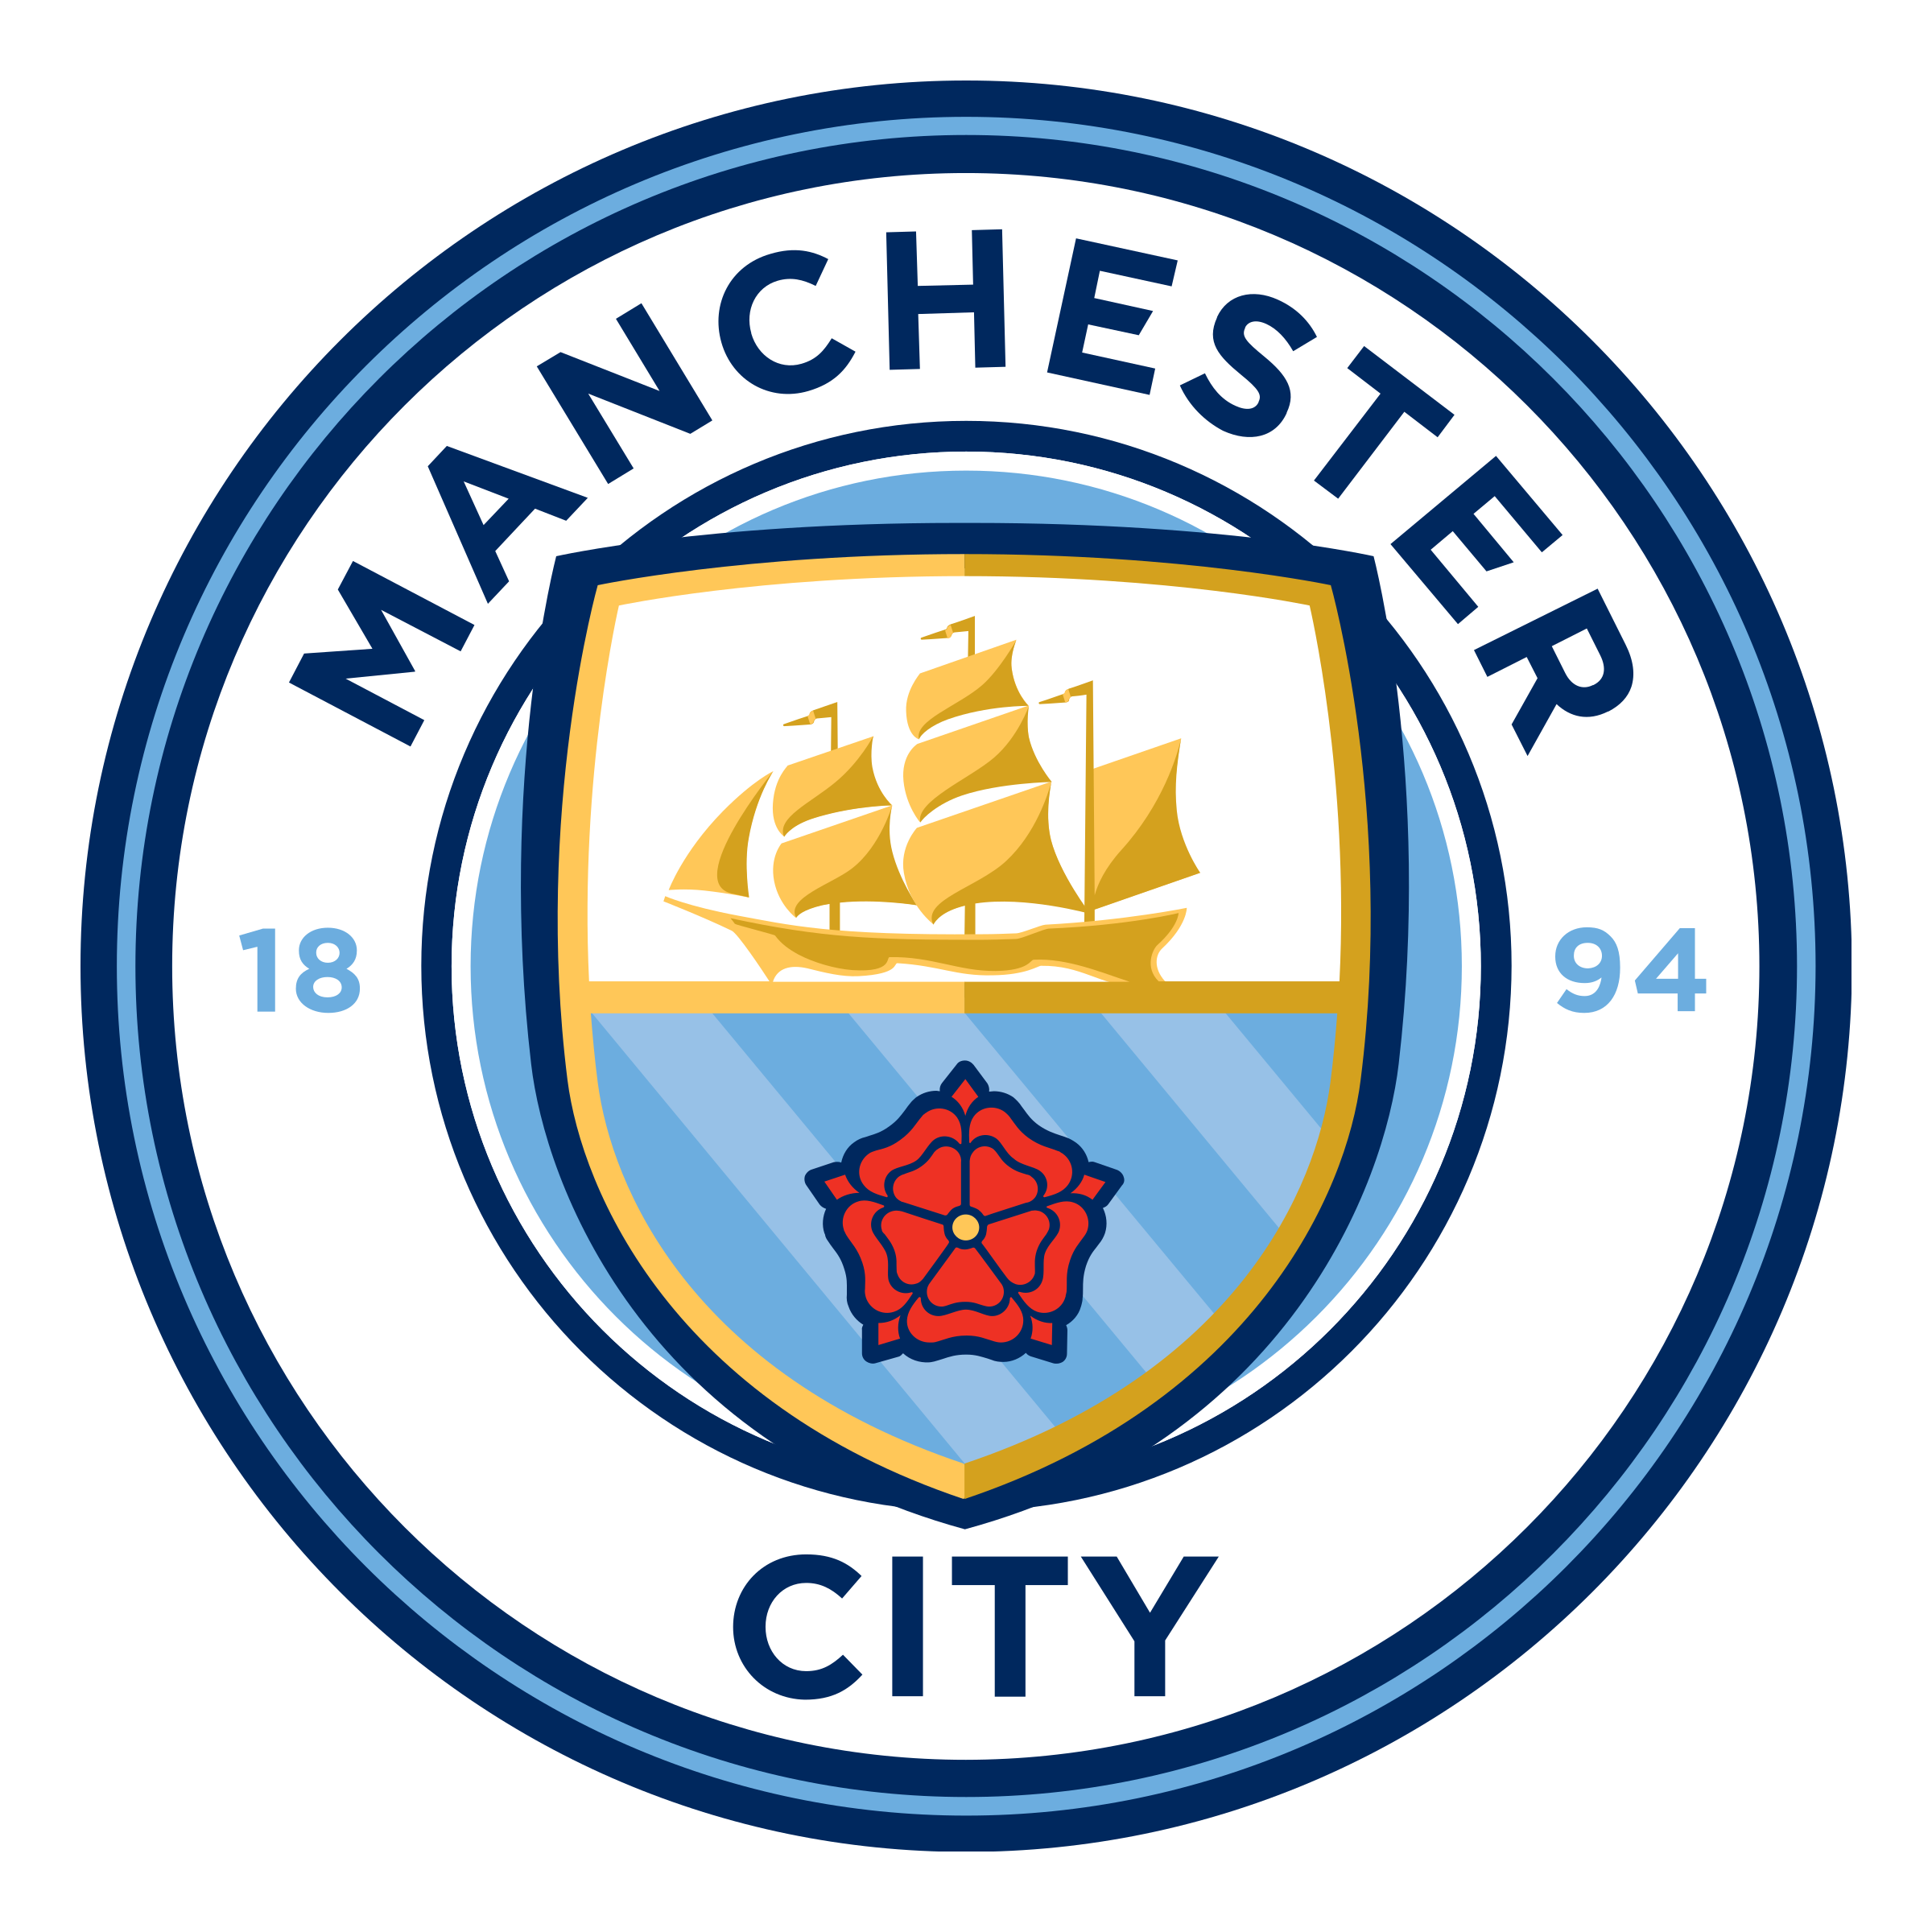 Manchester City Fc Png - Manchester City Logo PNG Transparent & SVG Vector - Freebie Supply